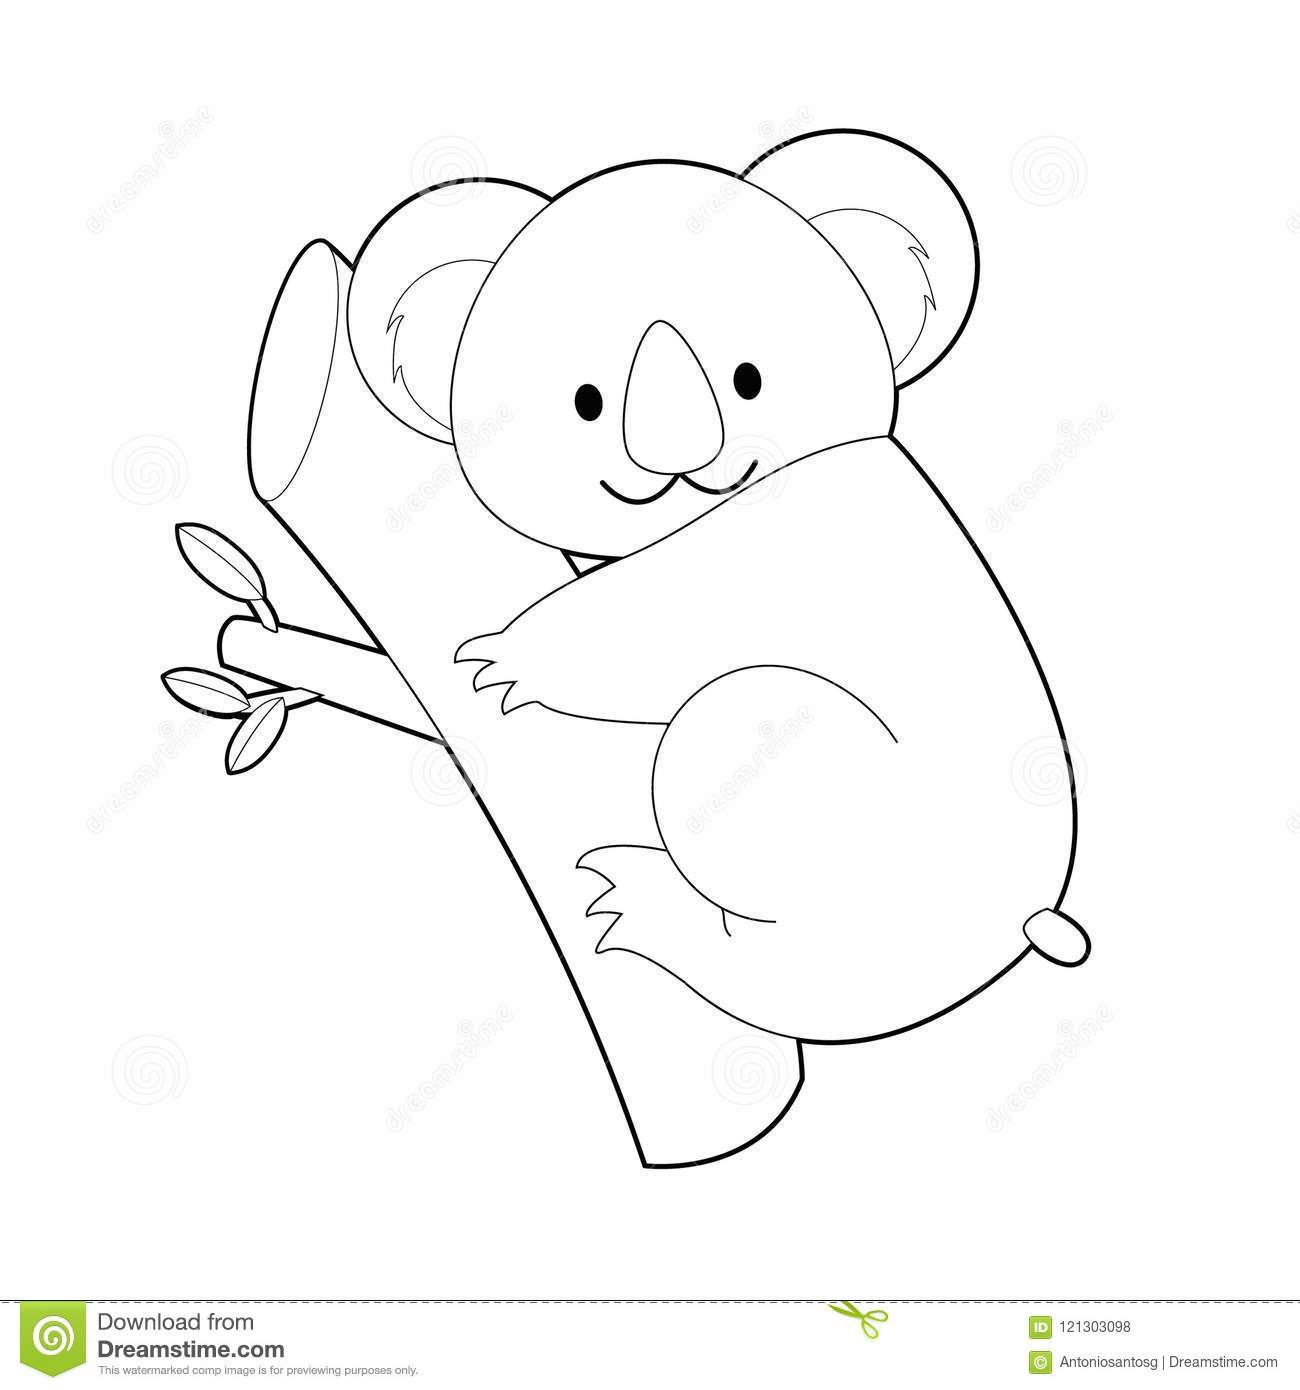 Easy Coloring Animals For Kids Koala Stock Vector Illustration Of